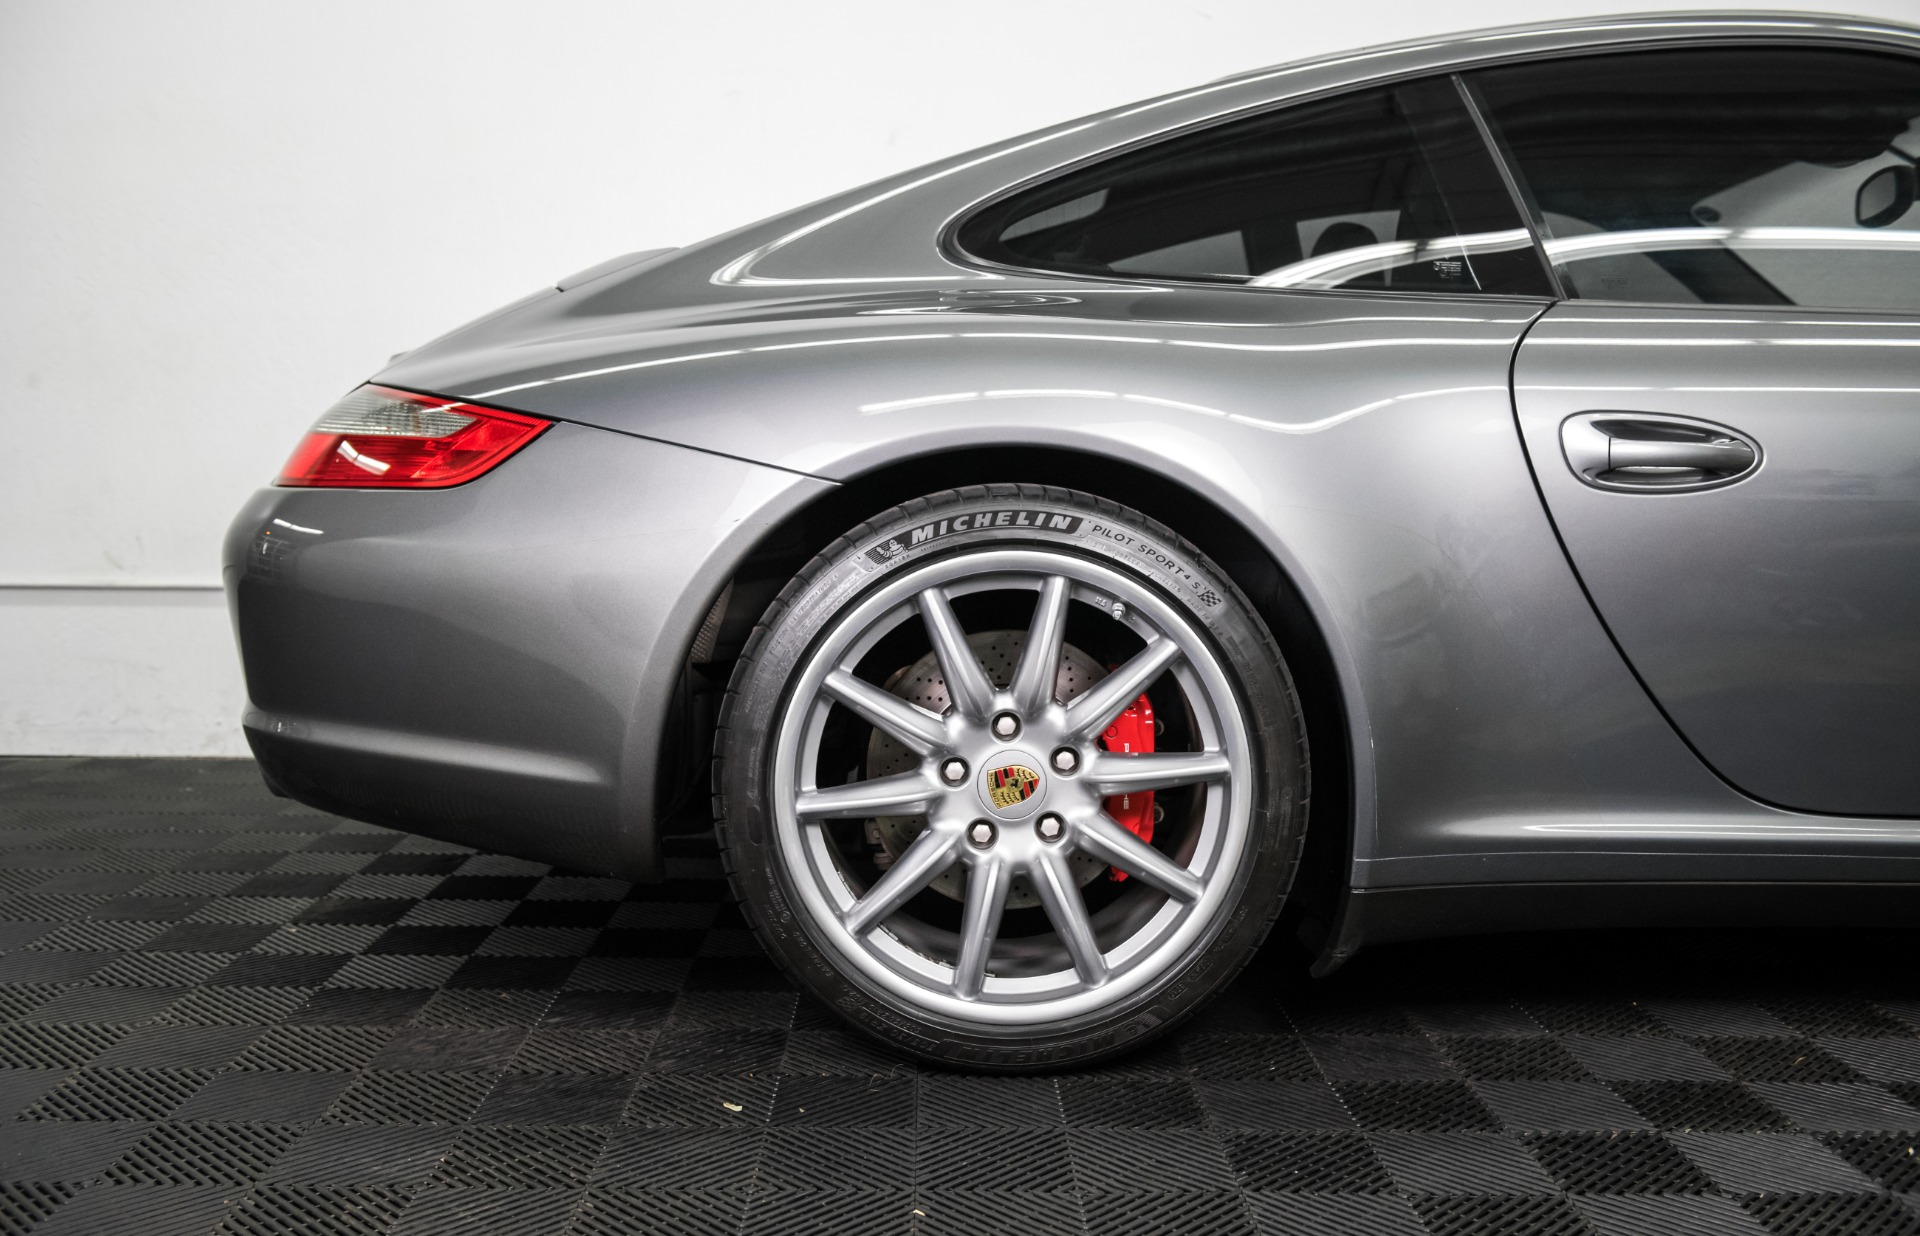 Used 2008 Porsche 911 Carrera 4S Used 2008 Porsche 911 Carrera 4S for sale $48,999 at Response Motors in Mountain View CA 5